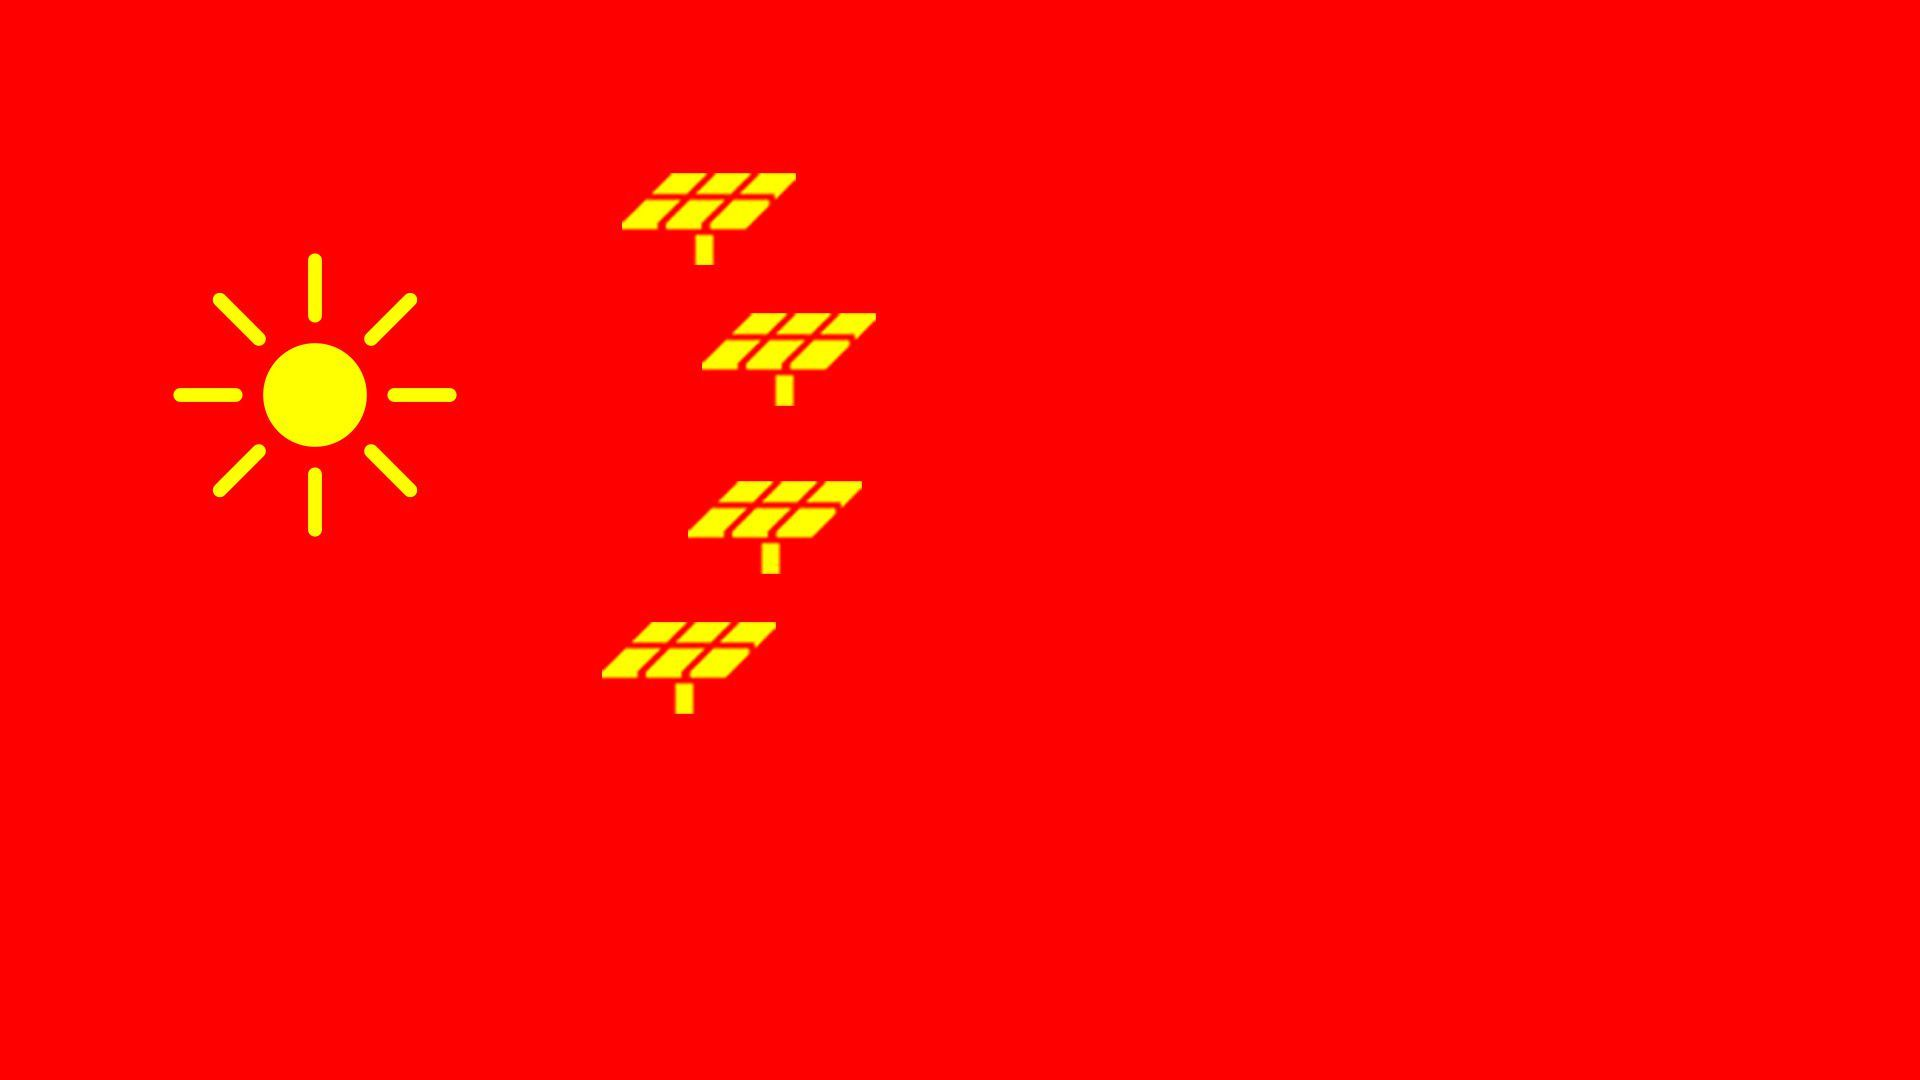 Chinese flag redesigned with the sun and solar panels